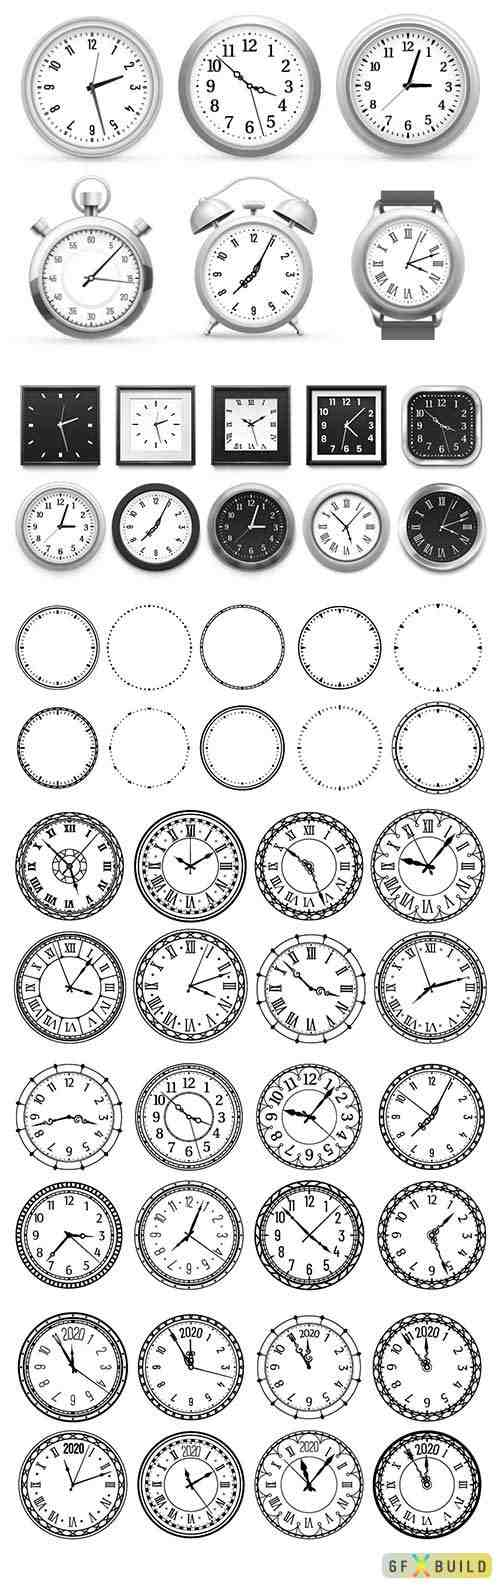 Realistic clock, modern white round wall clocks, black watch face and time watch